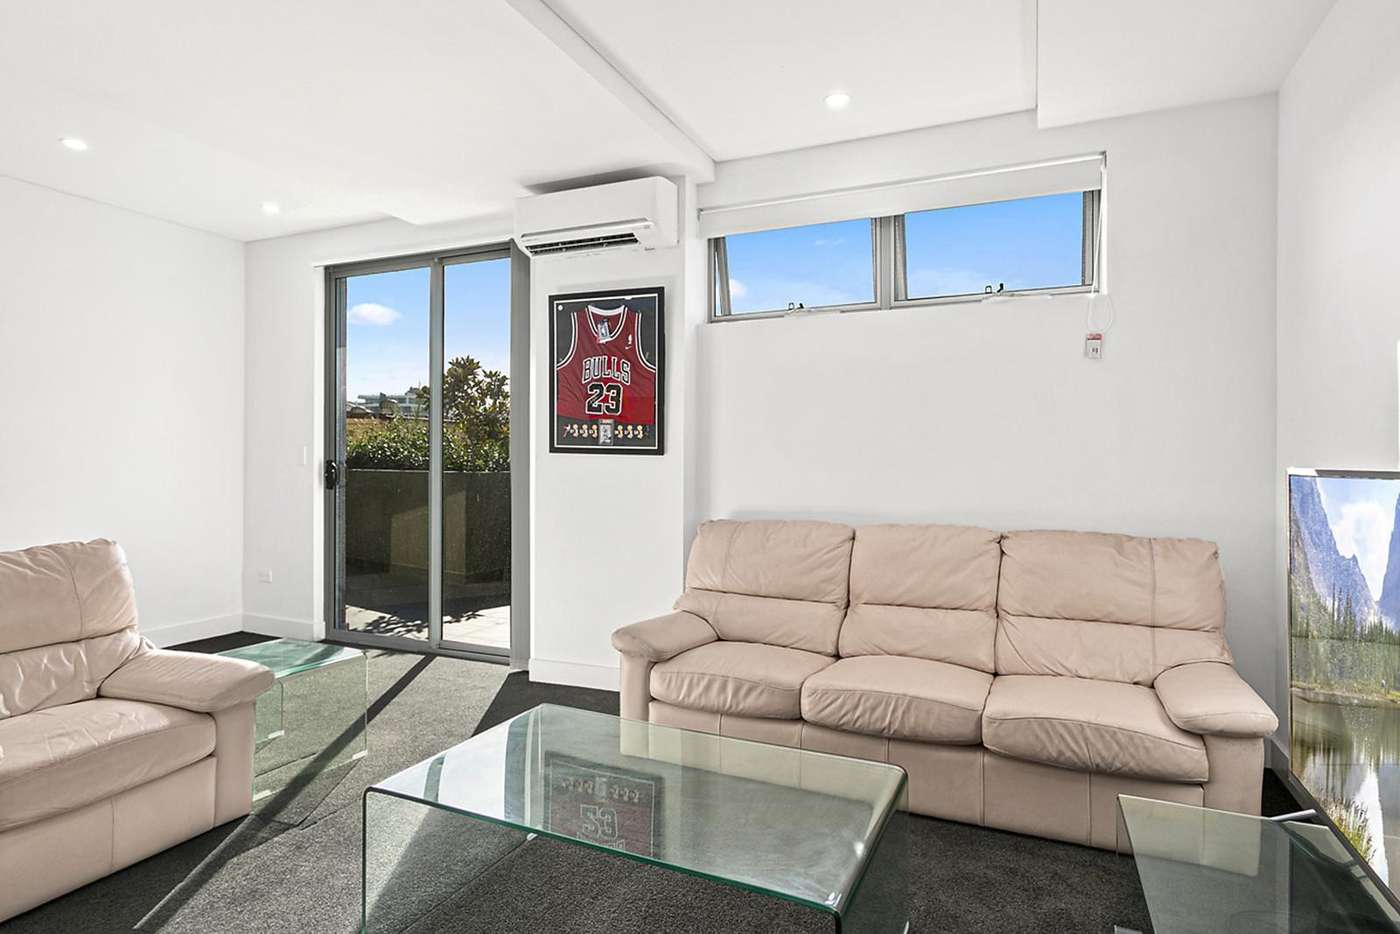 Main view of Homely apartment listing, 3/6-8 Hercules Street, Wollongong NSW 2500